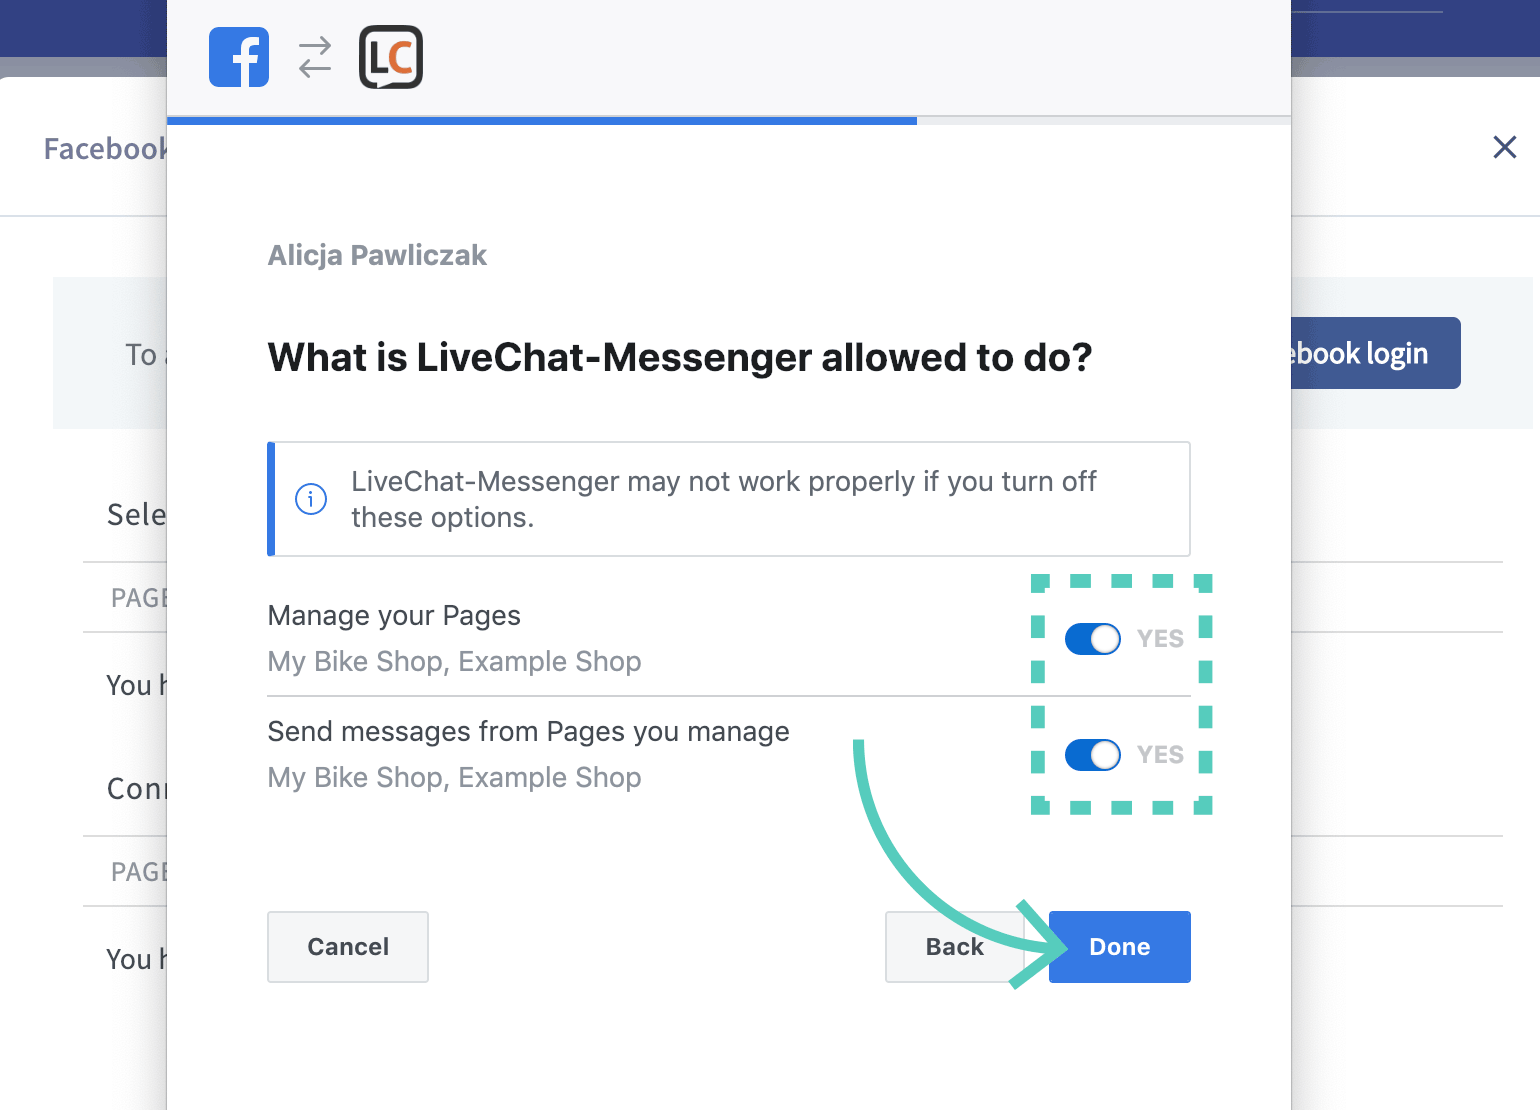 Permission to manage your Facebook pages